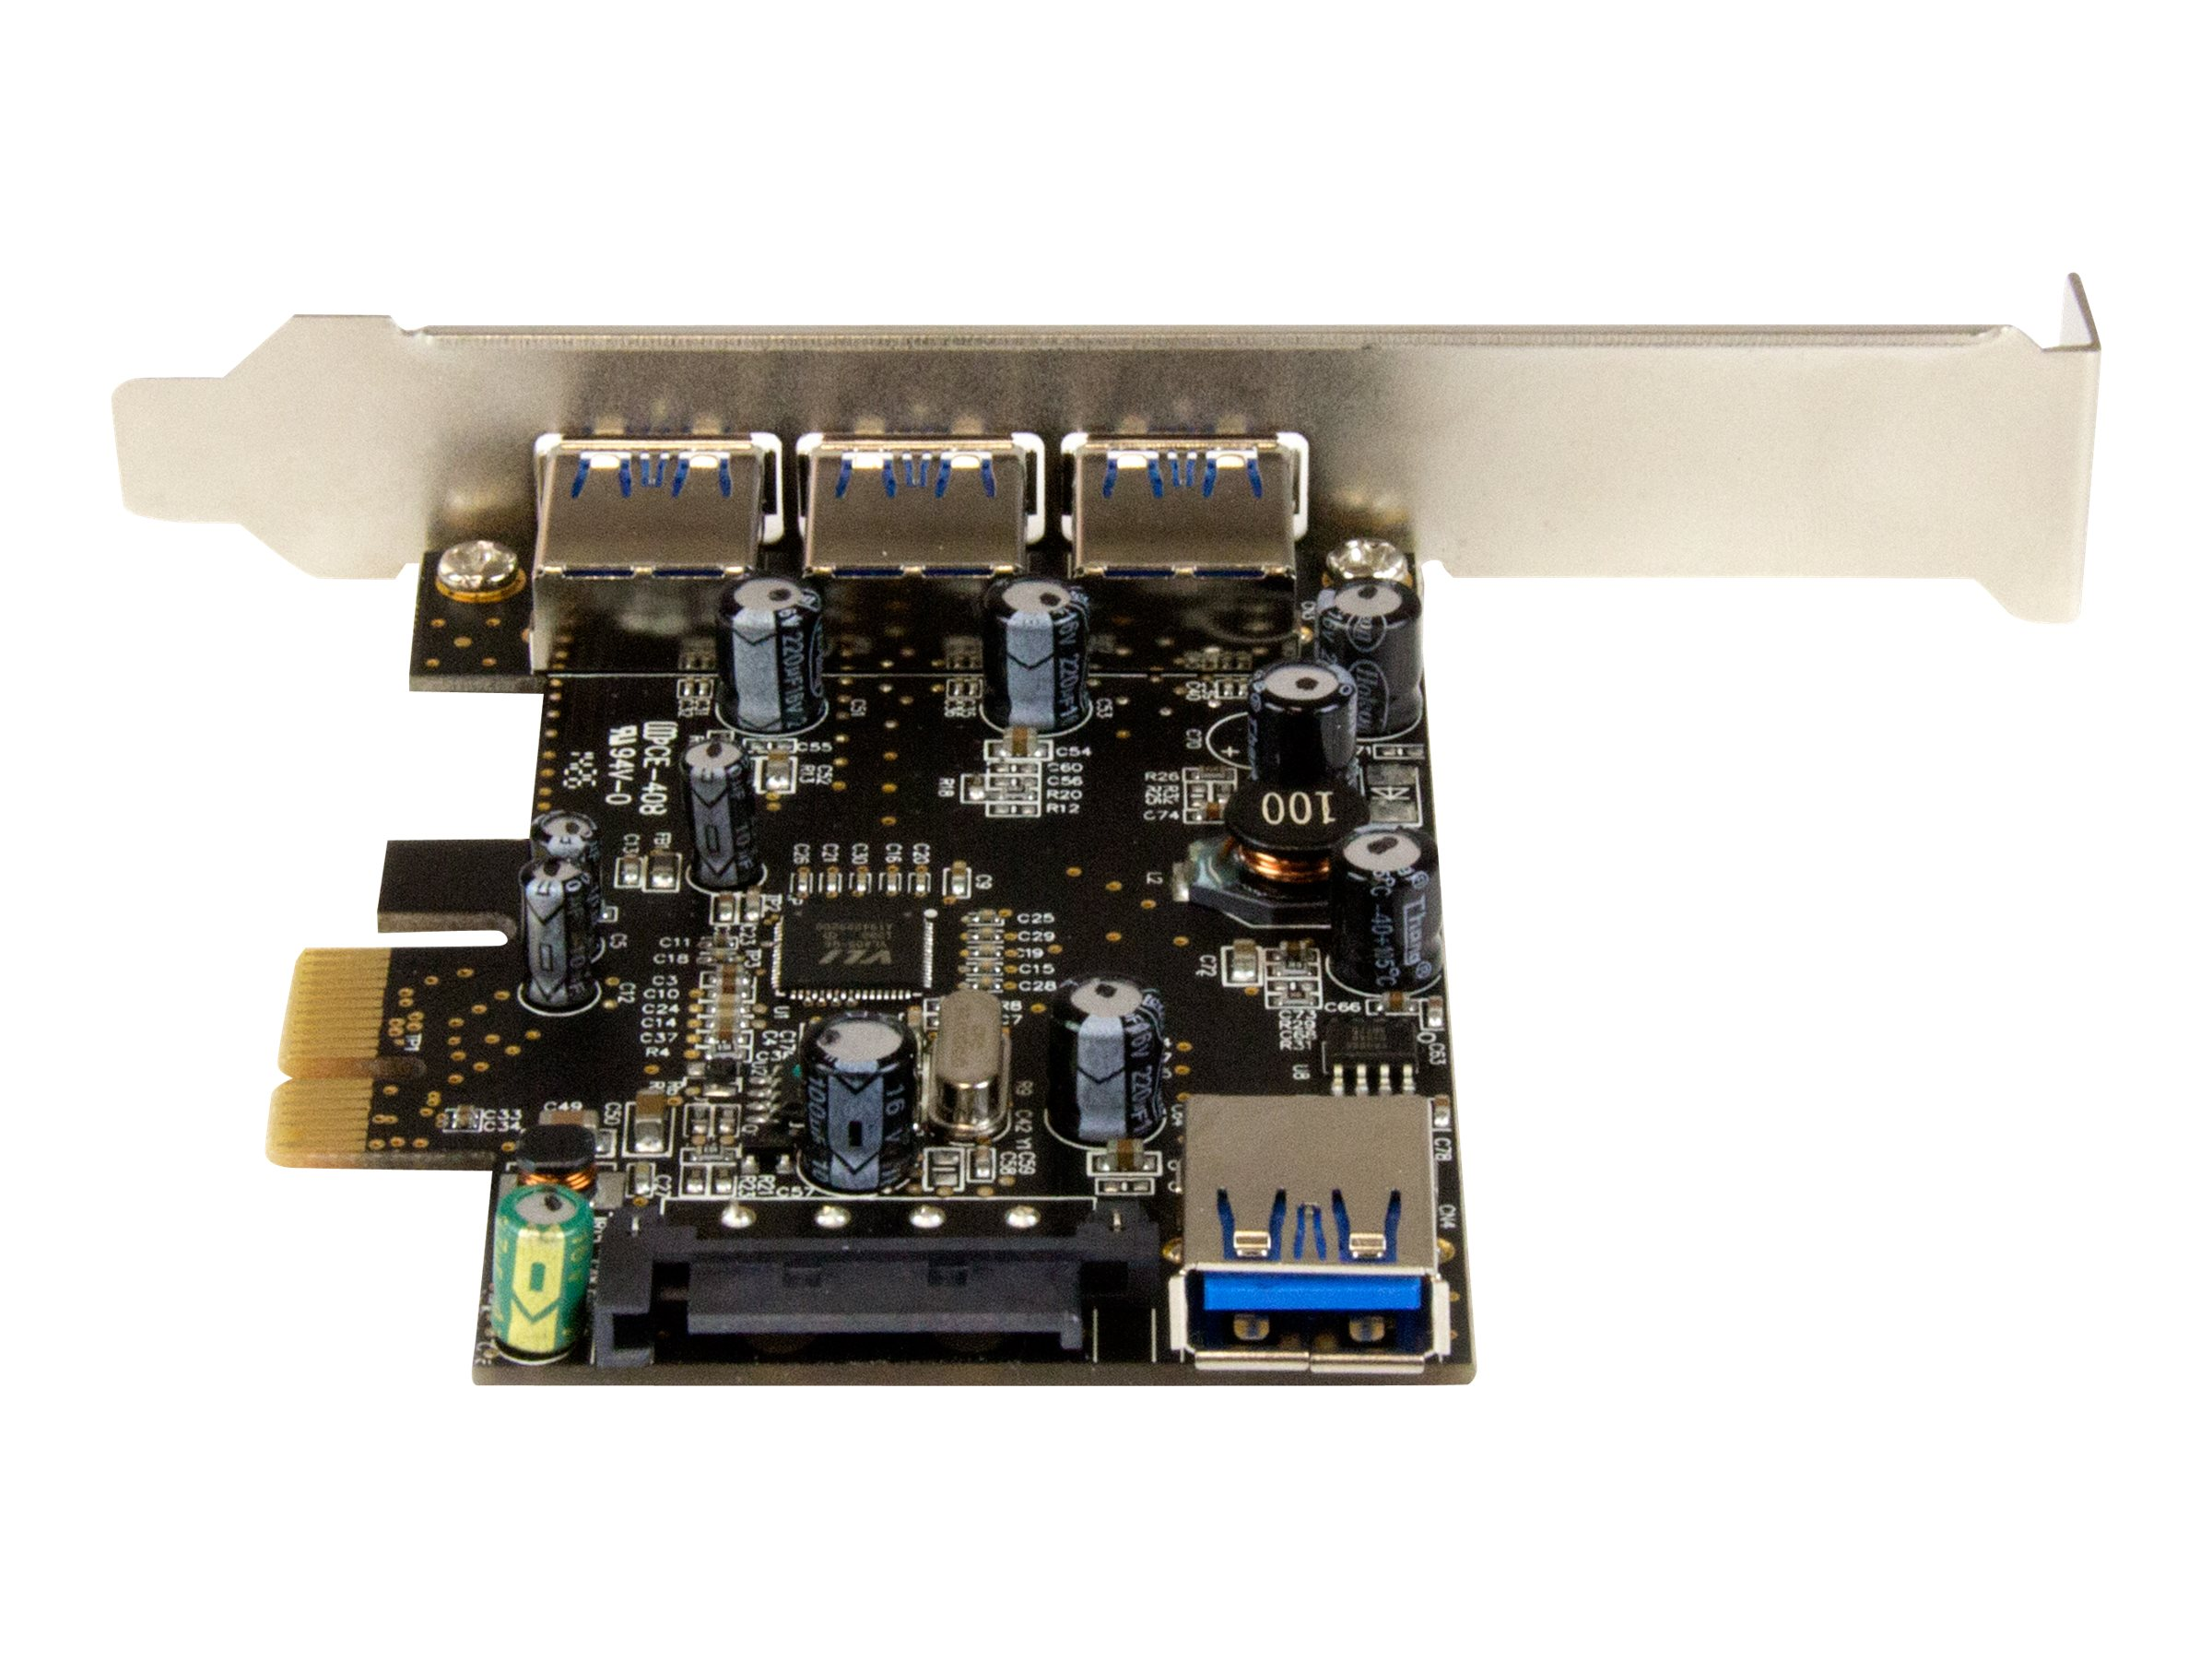 StarTech.com 4-port PCI Express USB 3.0 Card, PEXUSB3S42